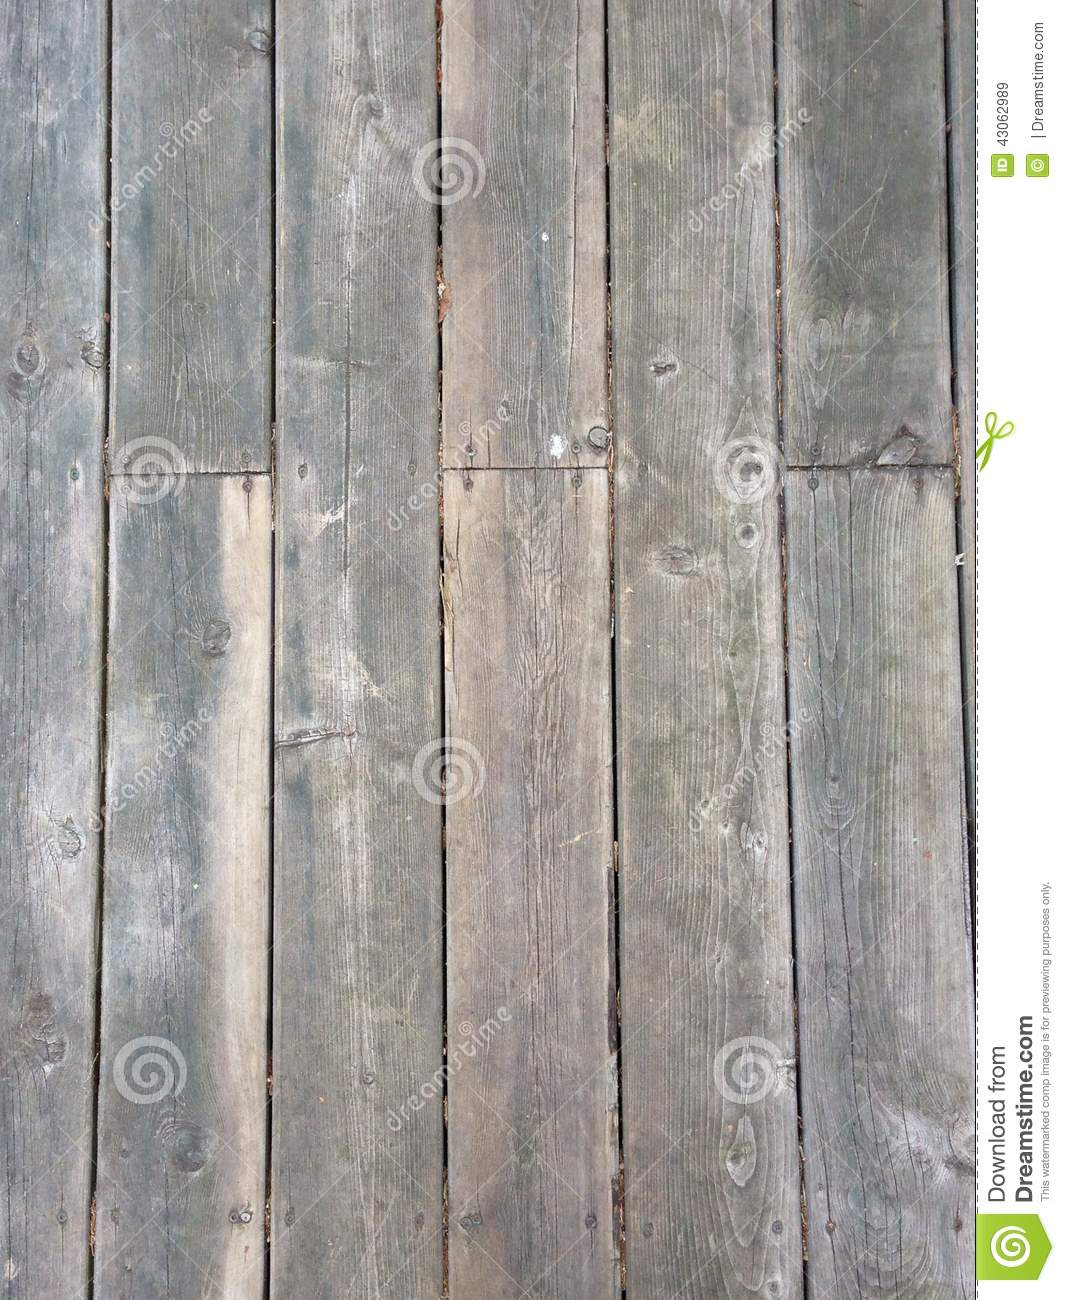 Weathered wood floor - Weathered Wood Floor Stock Photo - Image: 43062989